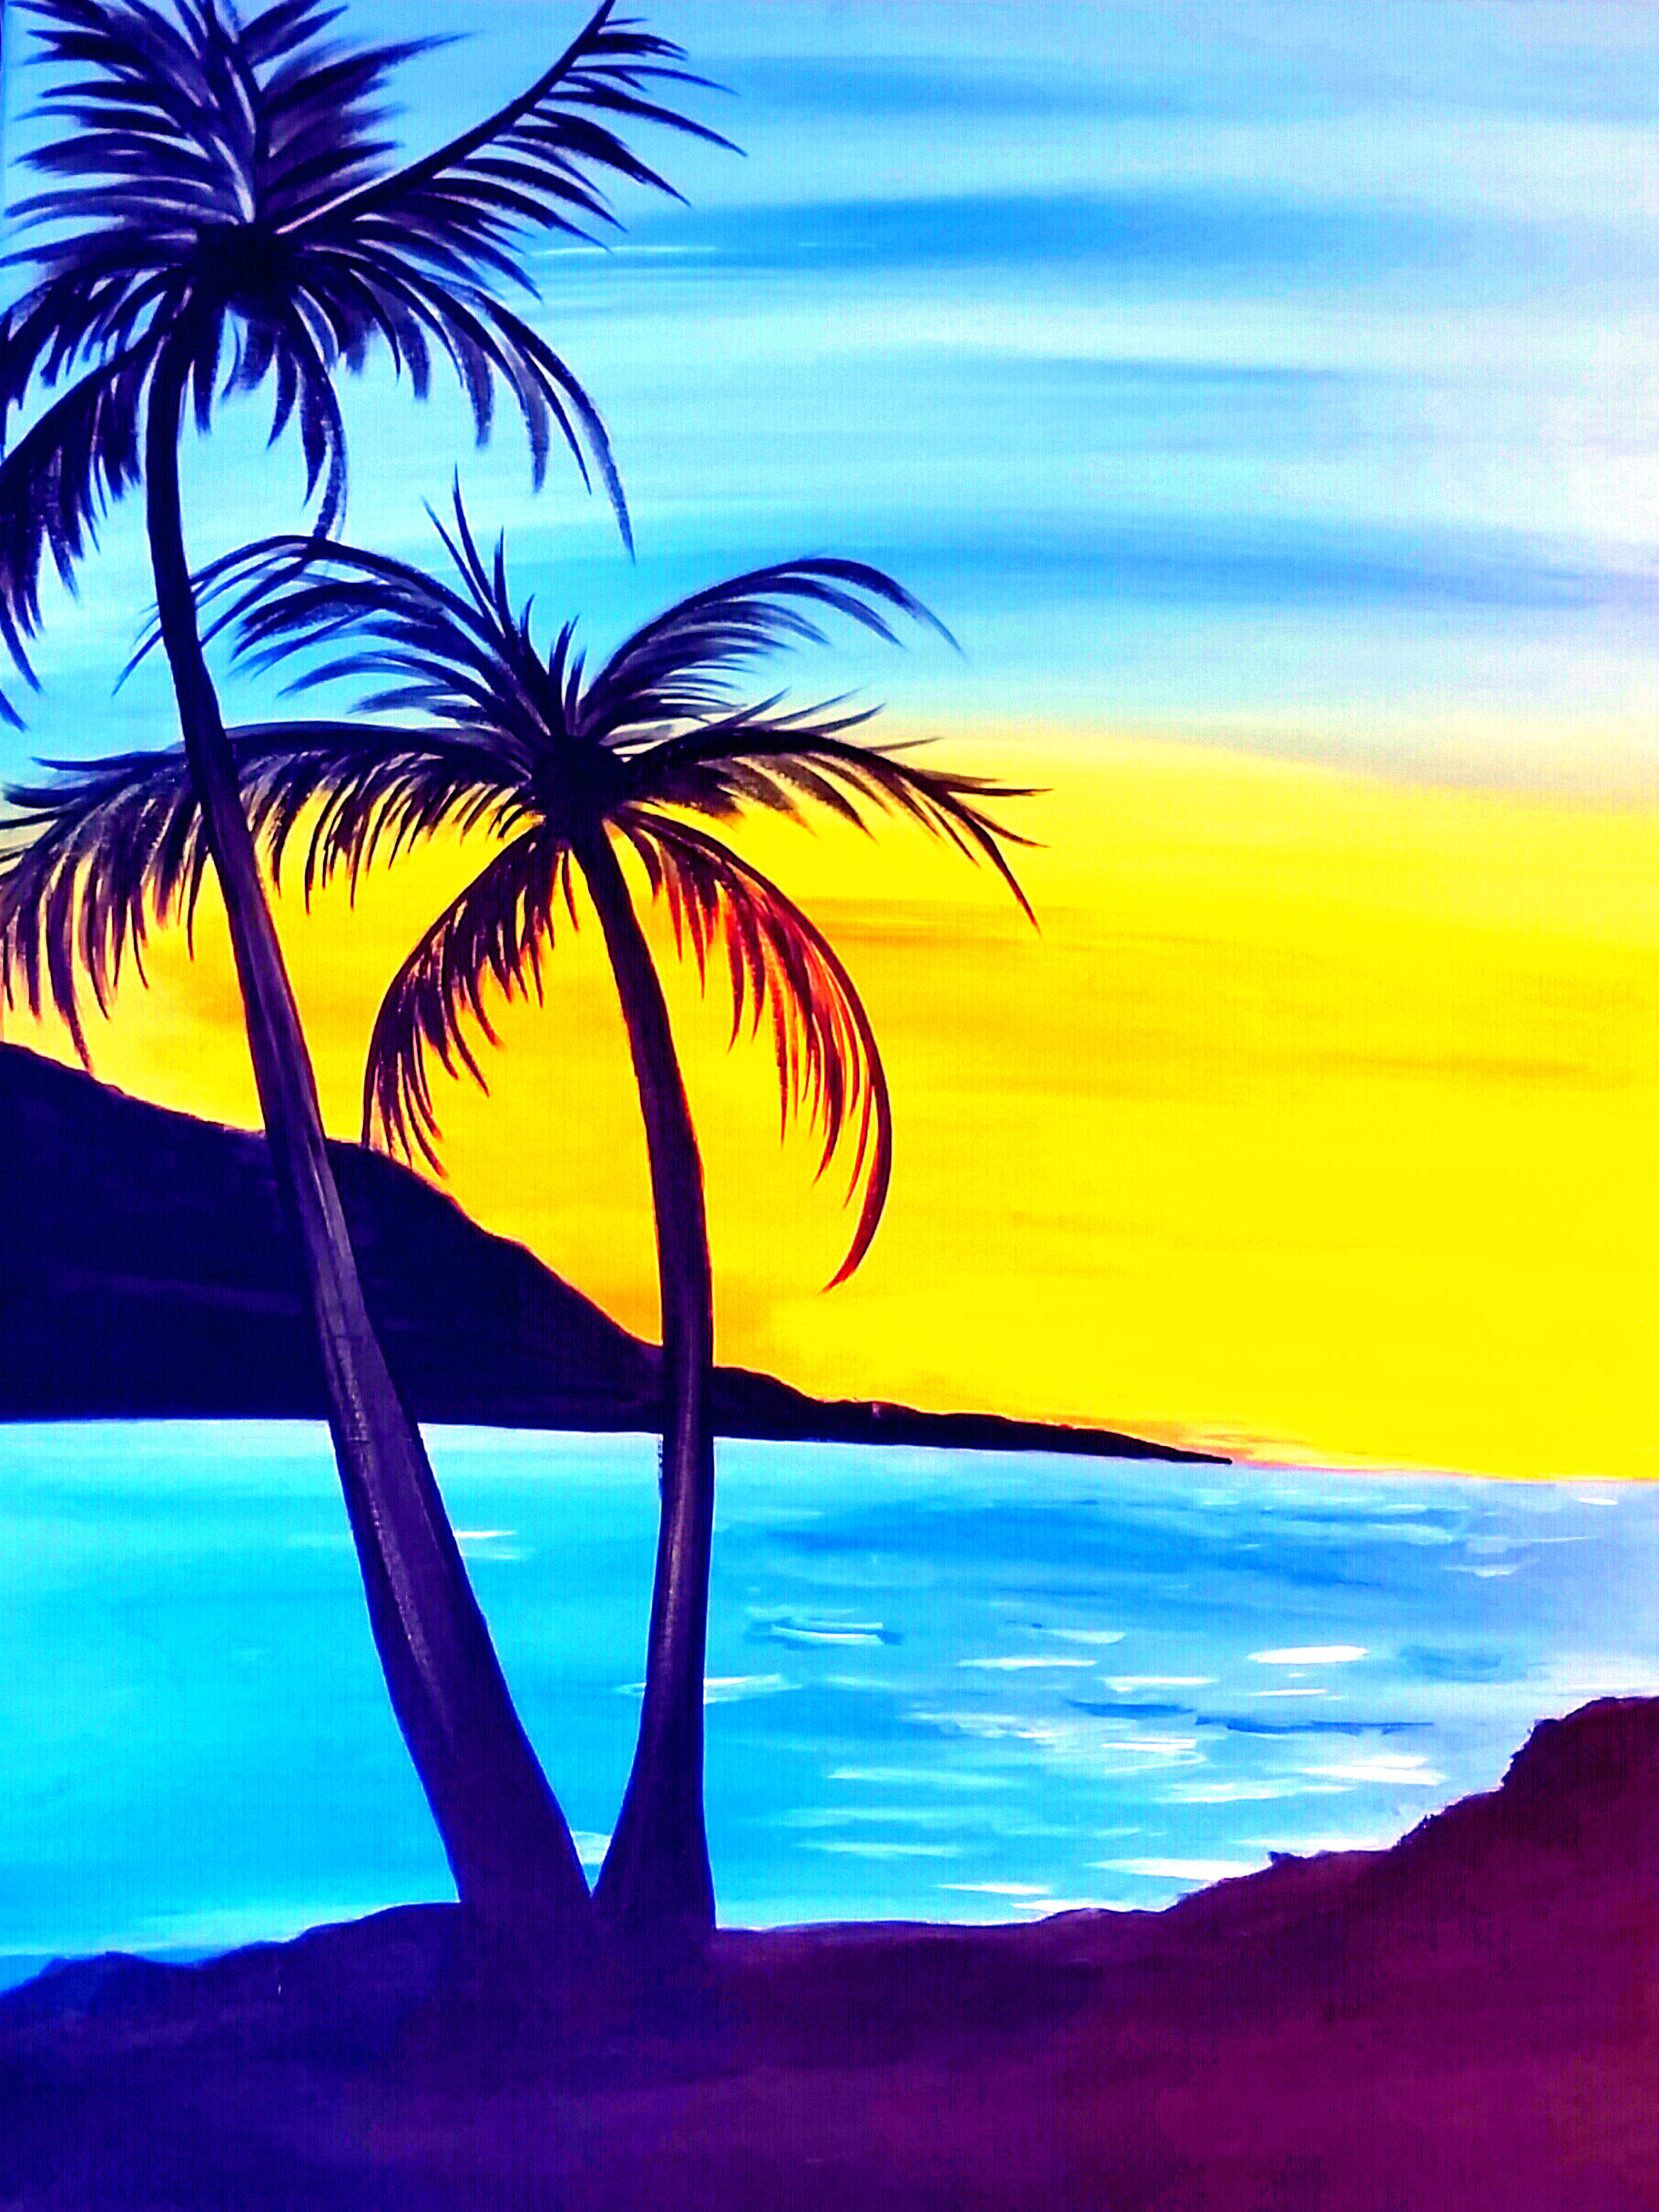 PALM TREE SUNSET By Maria Fraire